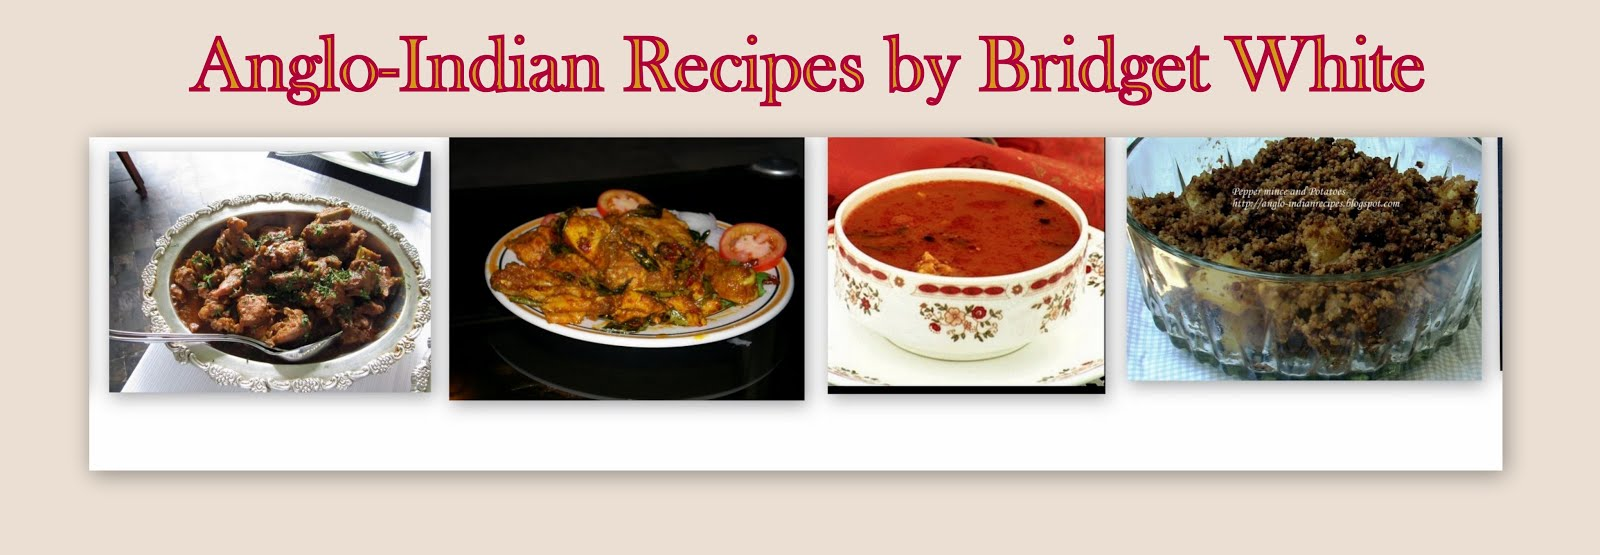 Cooking classes in bangalore by bridget white kumar for Anglo indian cuisine